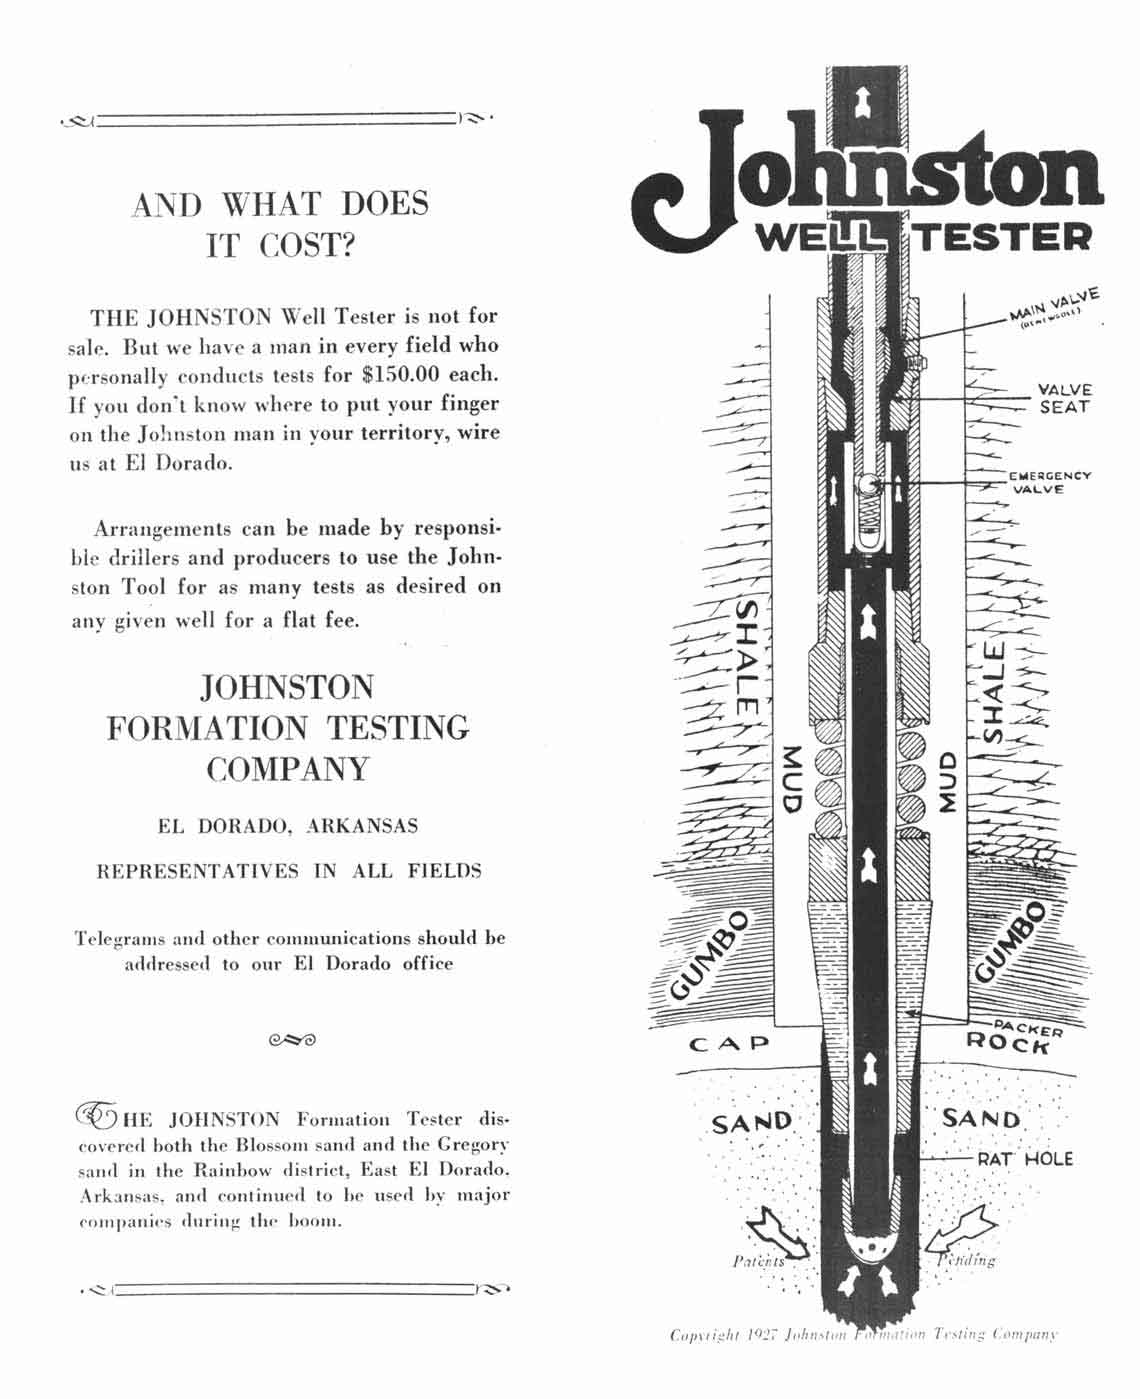 Johnston Well Tester advertisement from 1927.